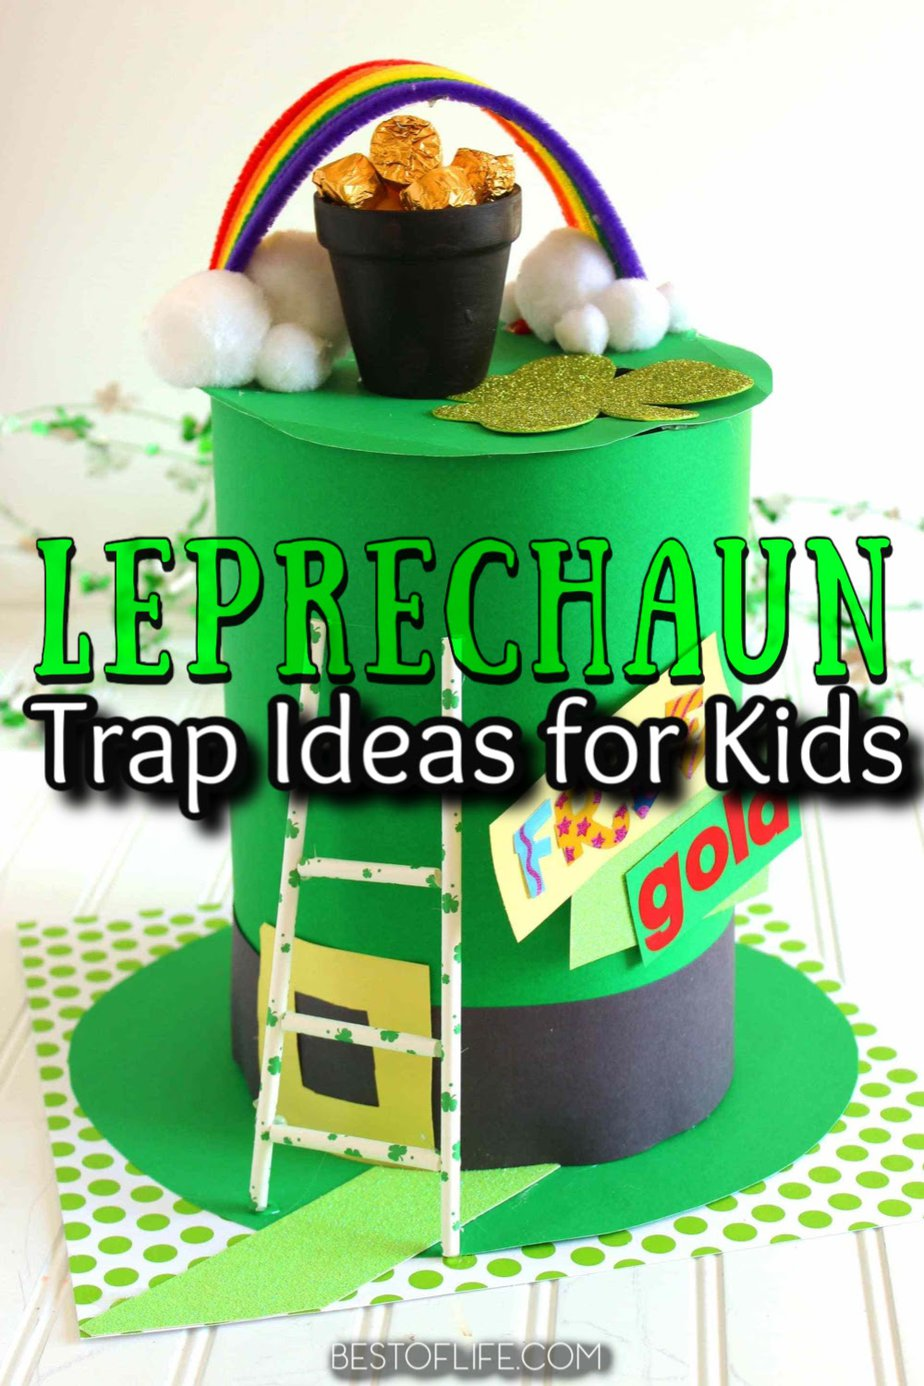 You can have a lot of St. Patrick's Day fun with your own DIY leprechaun trap ideas for kids and find new ways to celebrate St. Patrick's Day. St Patrick's Day Idea | St Patrick's Day Activities | DIY St Patrick's Day Ideas for Kids | Kids Activities | Leprechaun Ideas Trap #stpatricksday #DIY via @thebestoflife